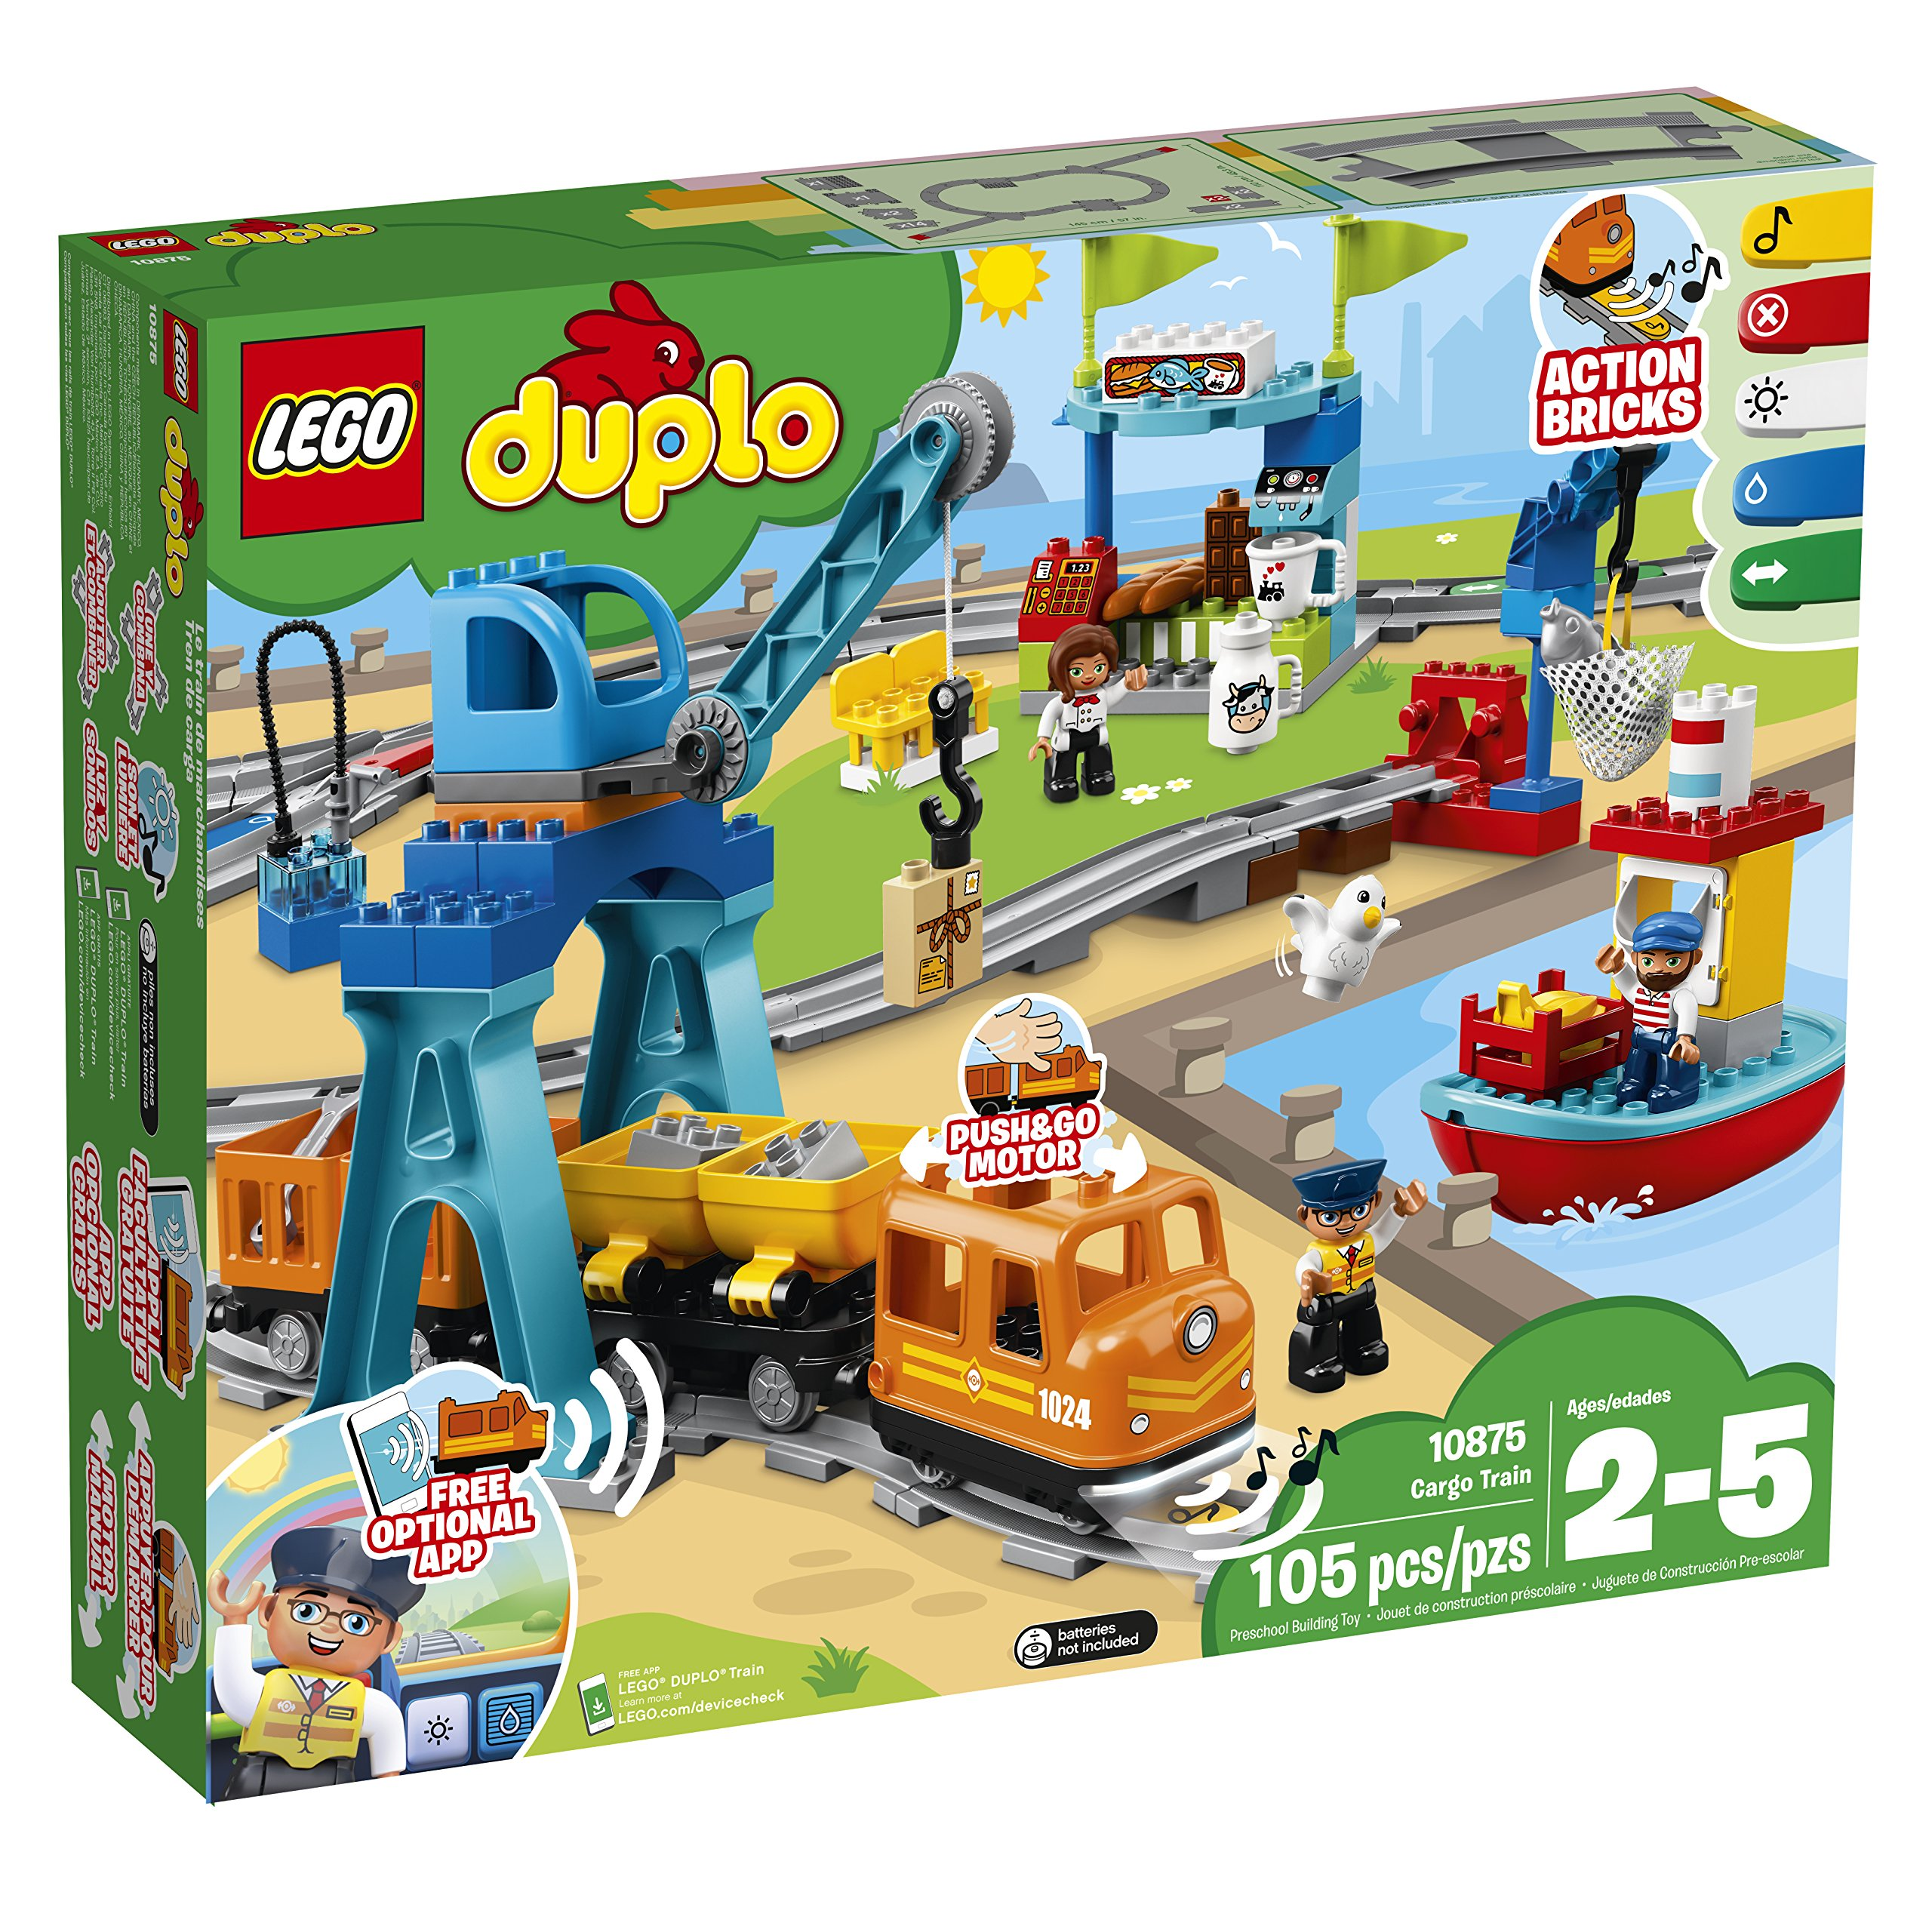 LEGO DUPLO Cargo Train 10875 Battery-Operated Building Blocks Set, Best Engineering and STEM Toy for Toddlers (105 Pieces) (Amazon Exclusive) by LEGO DUPLO Trains (Image #4)